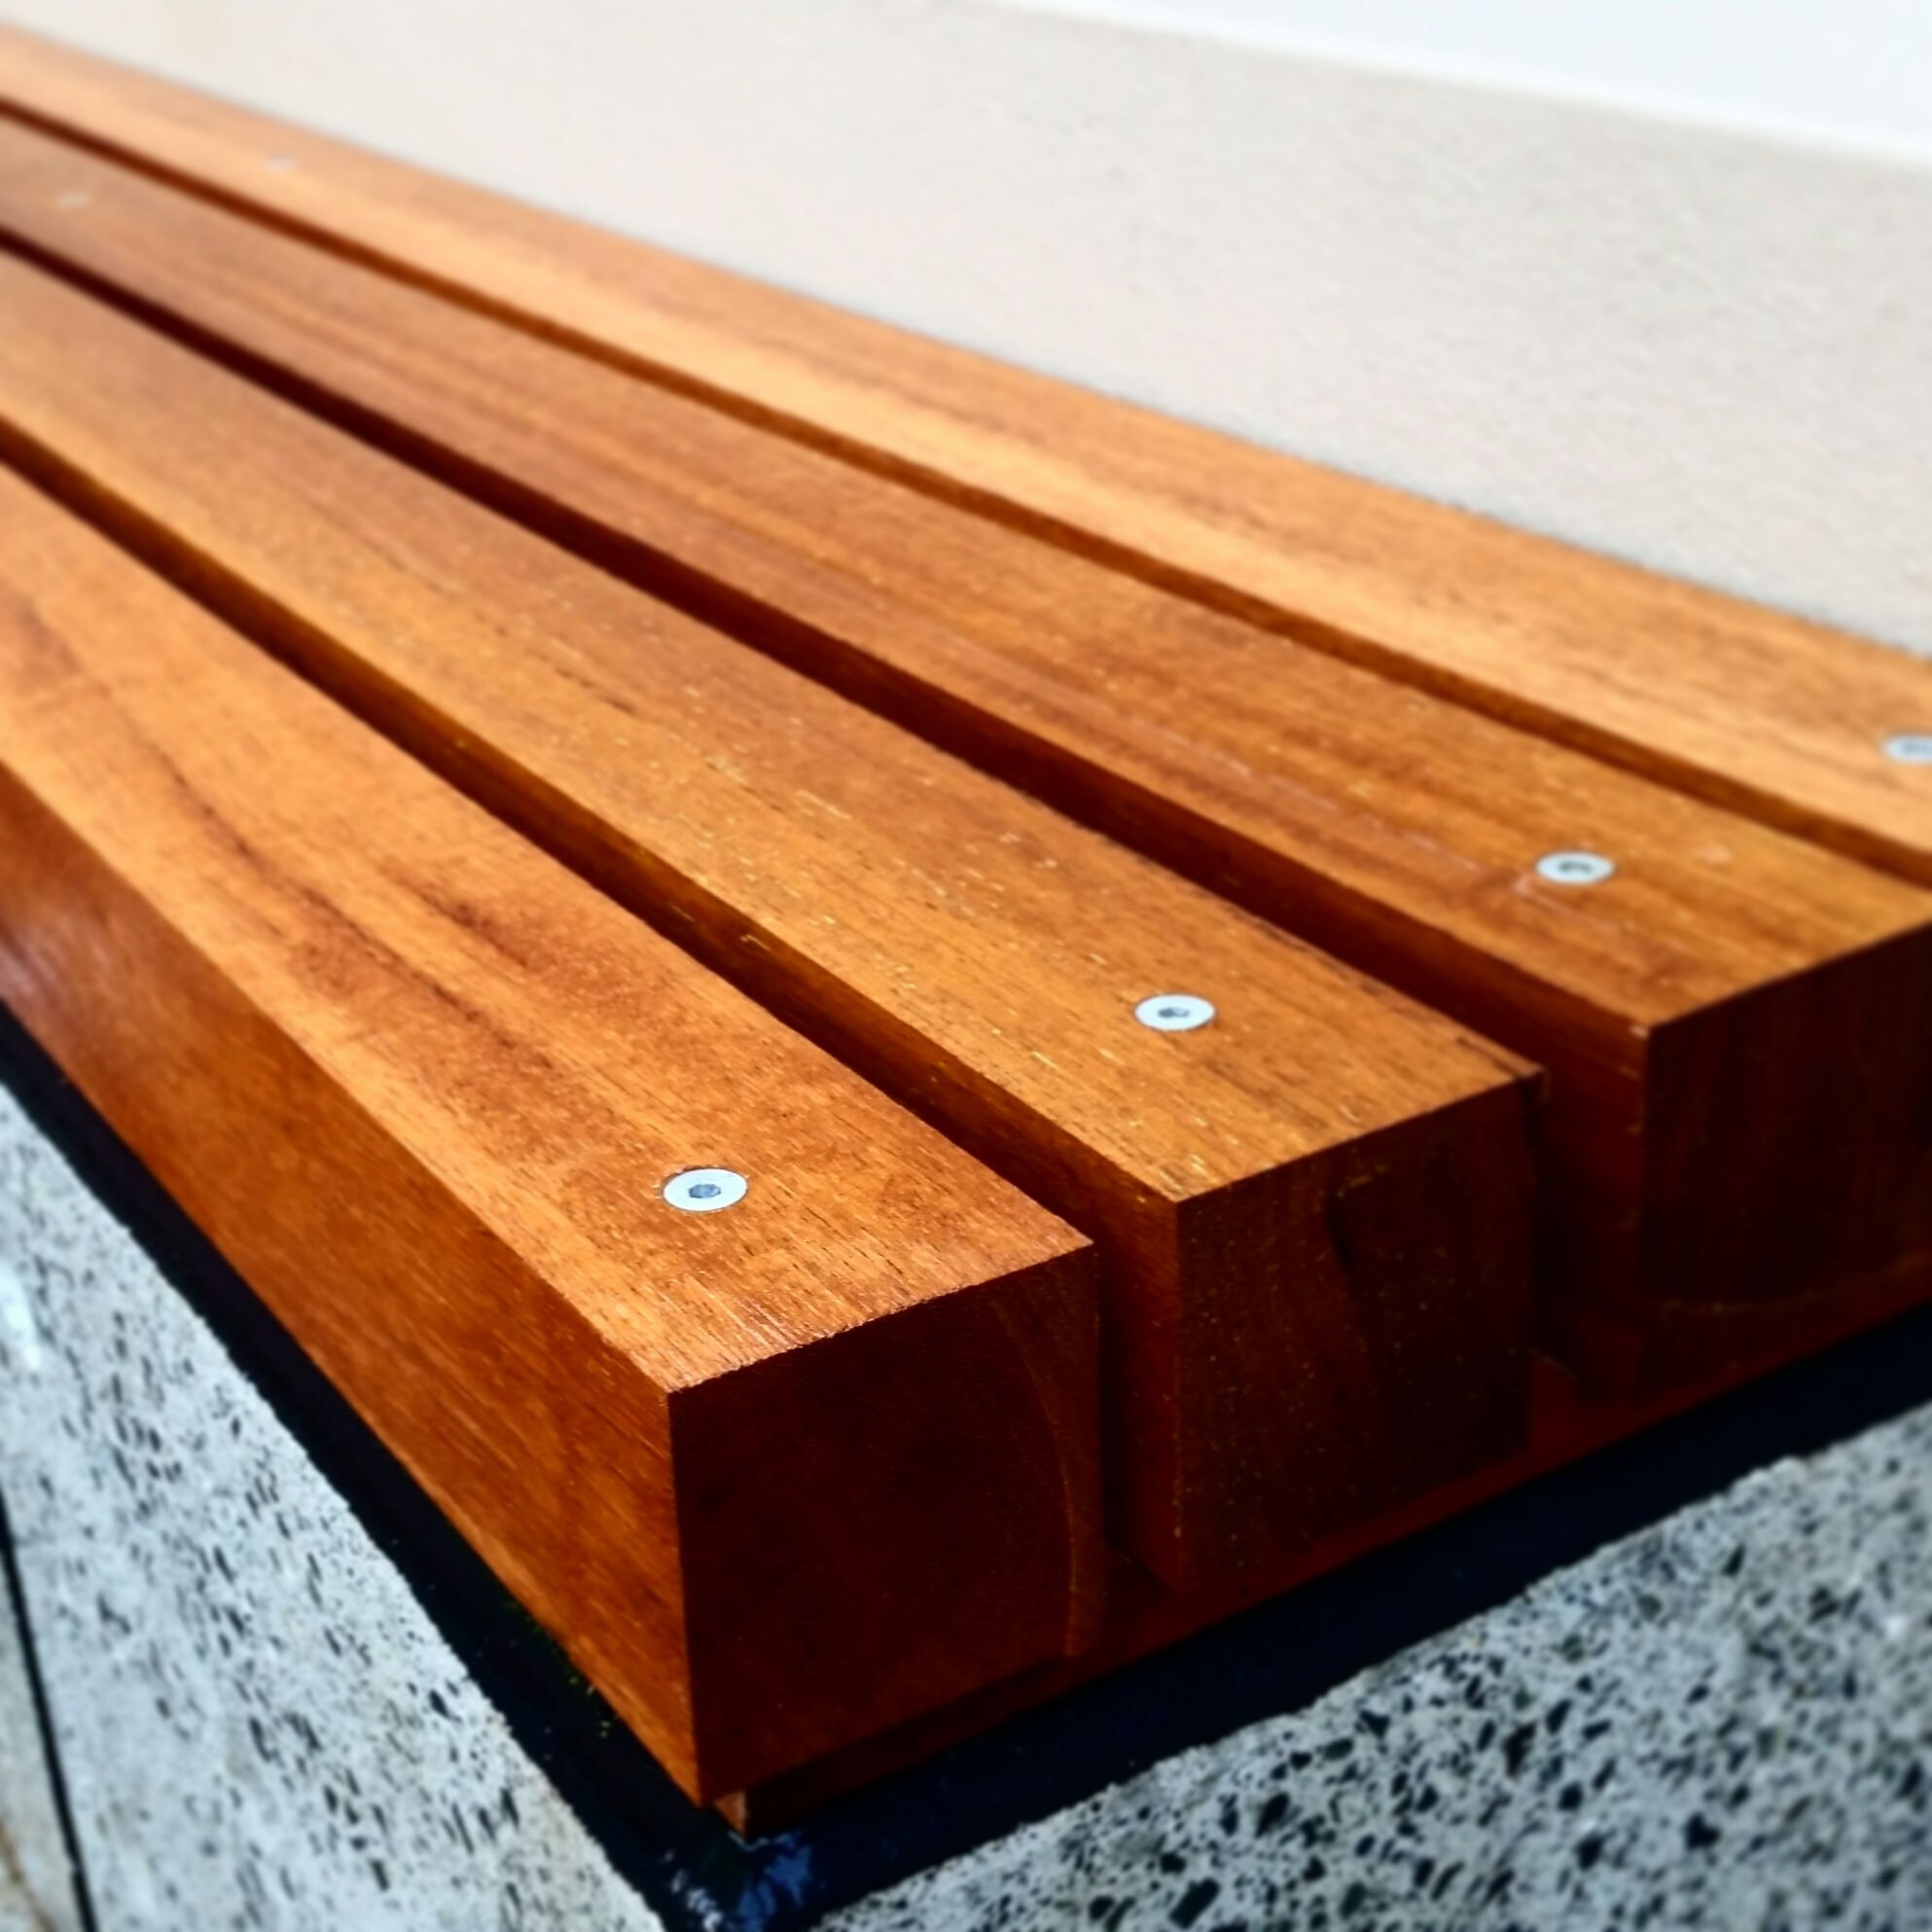 Merbau Timber Posts Fixed To Polished Concrete Bench Seat